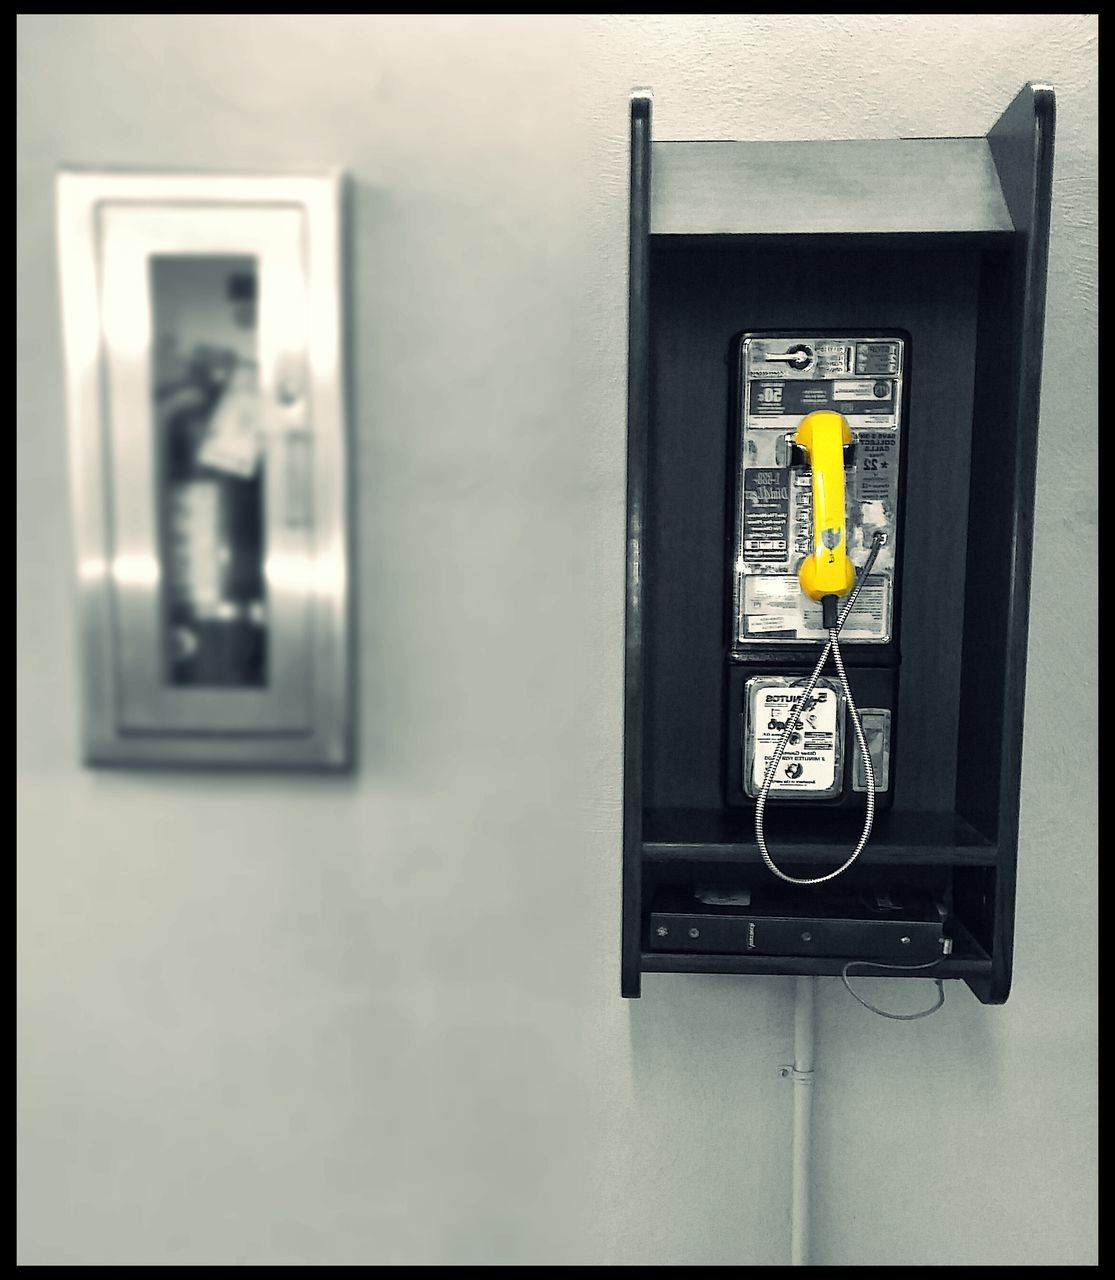 connection, communication, telephone, pay phone, technology, no people, convenience, close-up, telephone receiver, day, telephone booth, indoors, telecommunications equipment